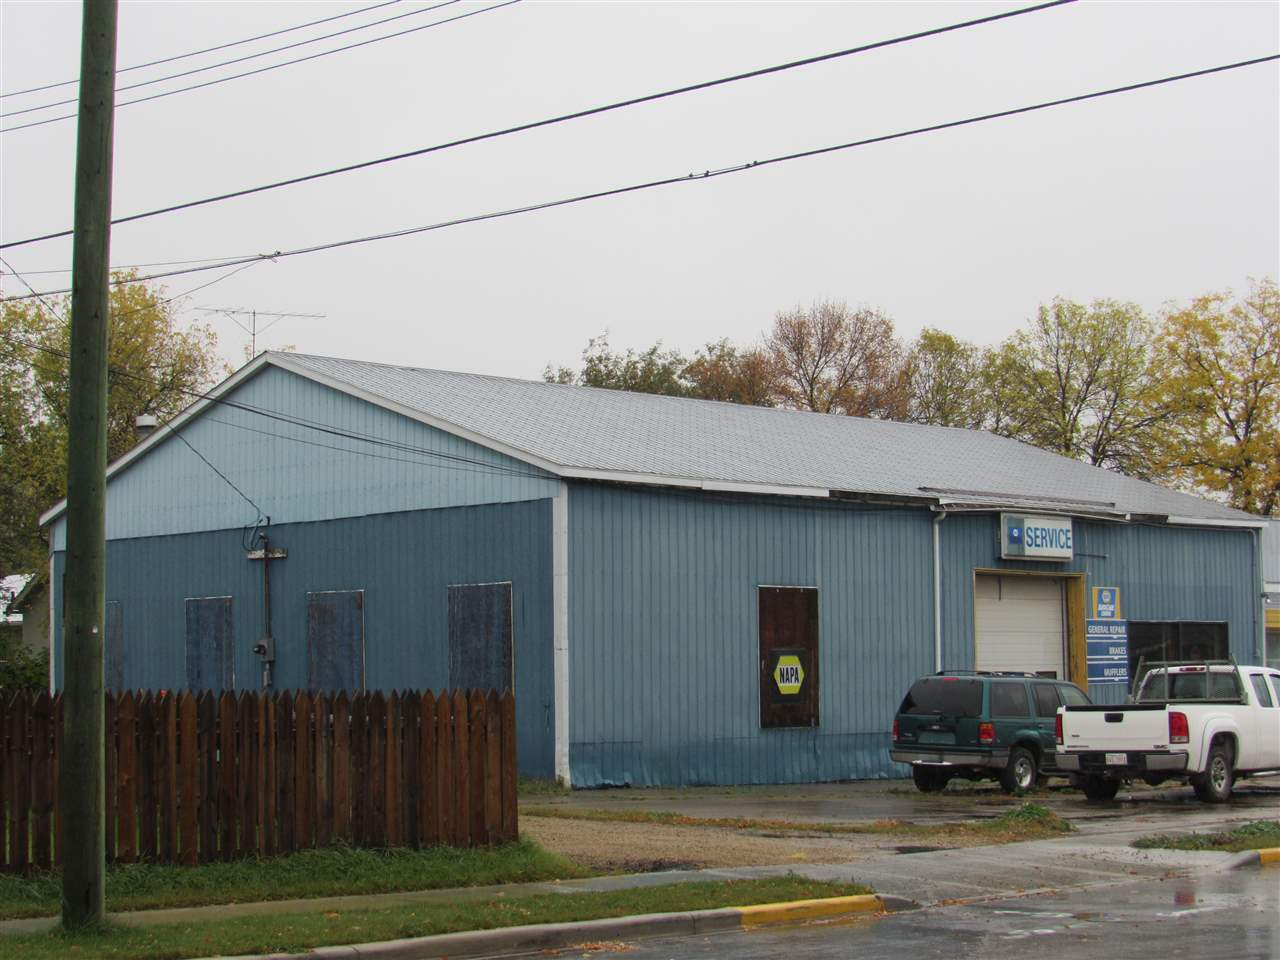 The perfect opportunity to own and operate a full service mechanical shop. The shop is currently operating as an automotive repair shop and all equipment for this is included in the purchase price. It boasts a 5000 sq. ft. shop and show room with a good sized parking lot in front in a great location close to downtown. The current business has operated in this location for more than 30 years. Just walk in and start working.